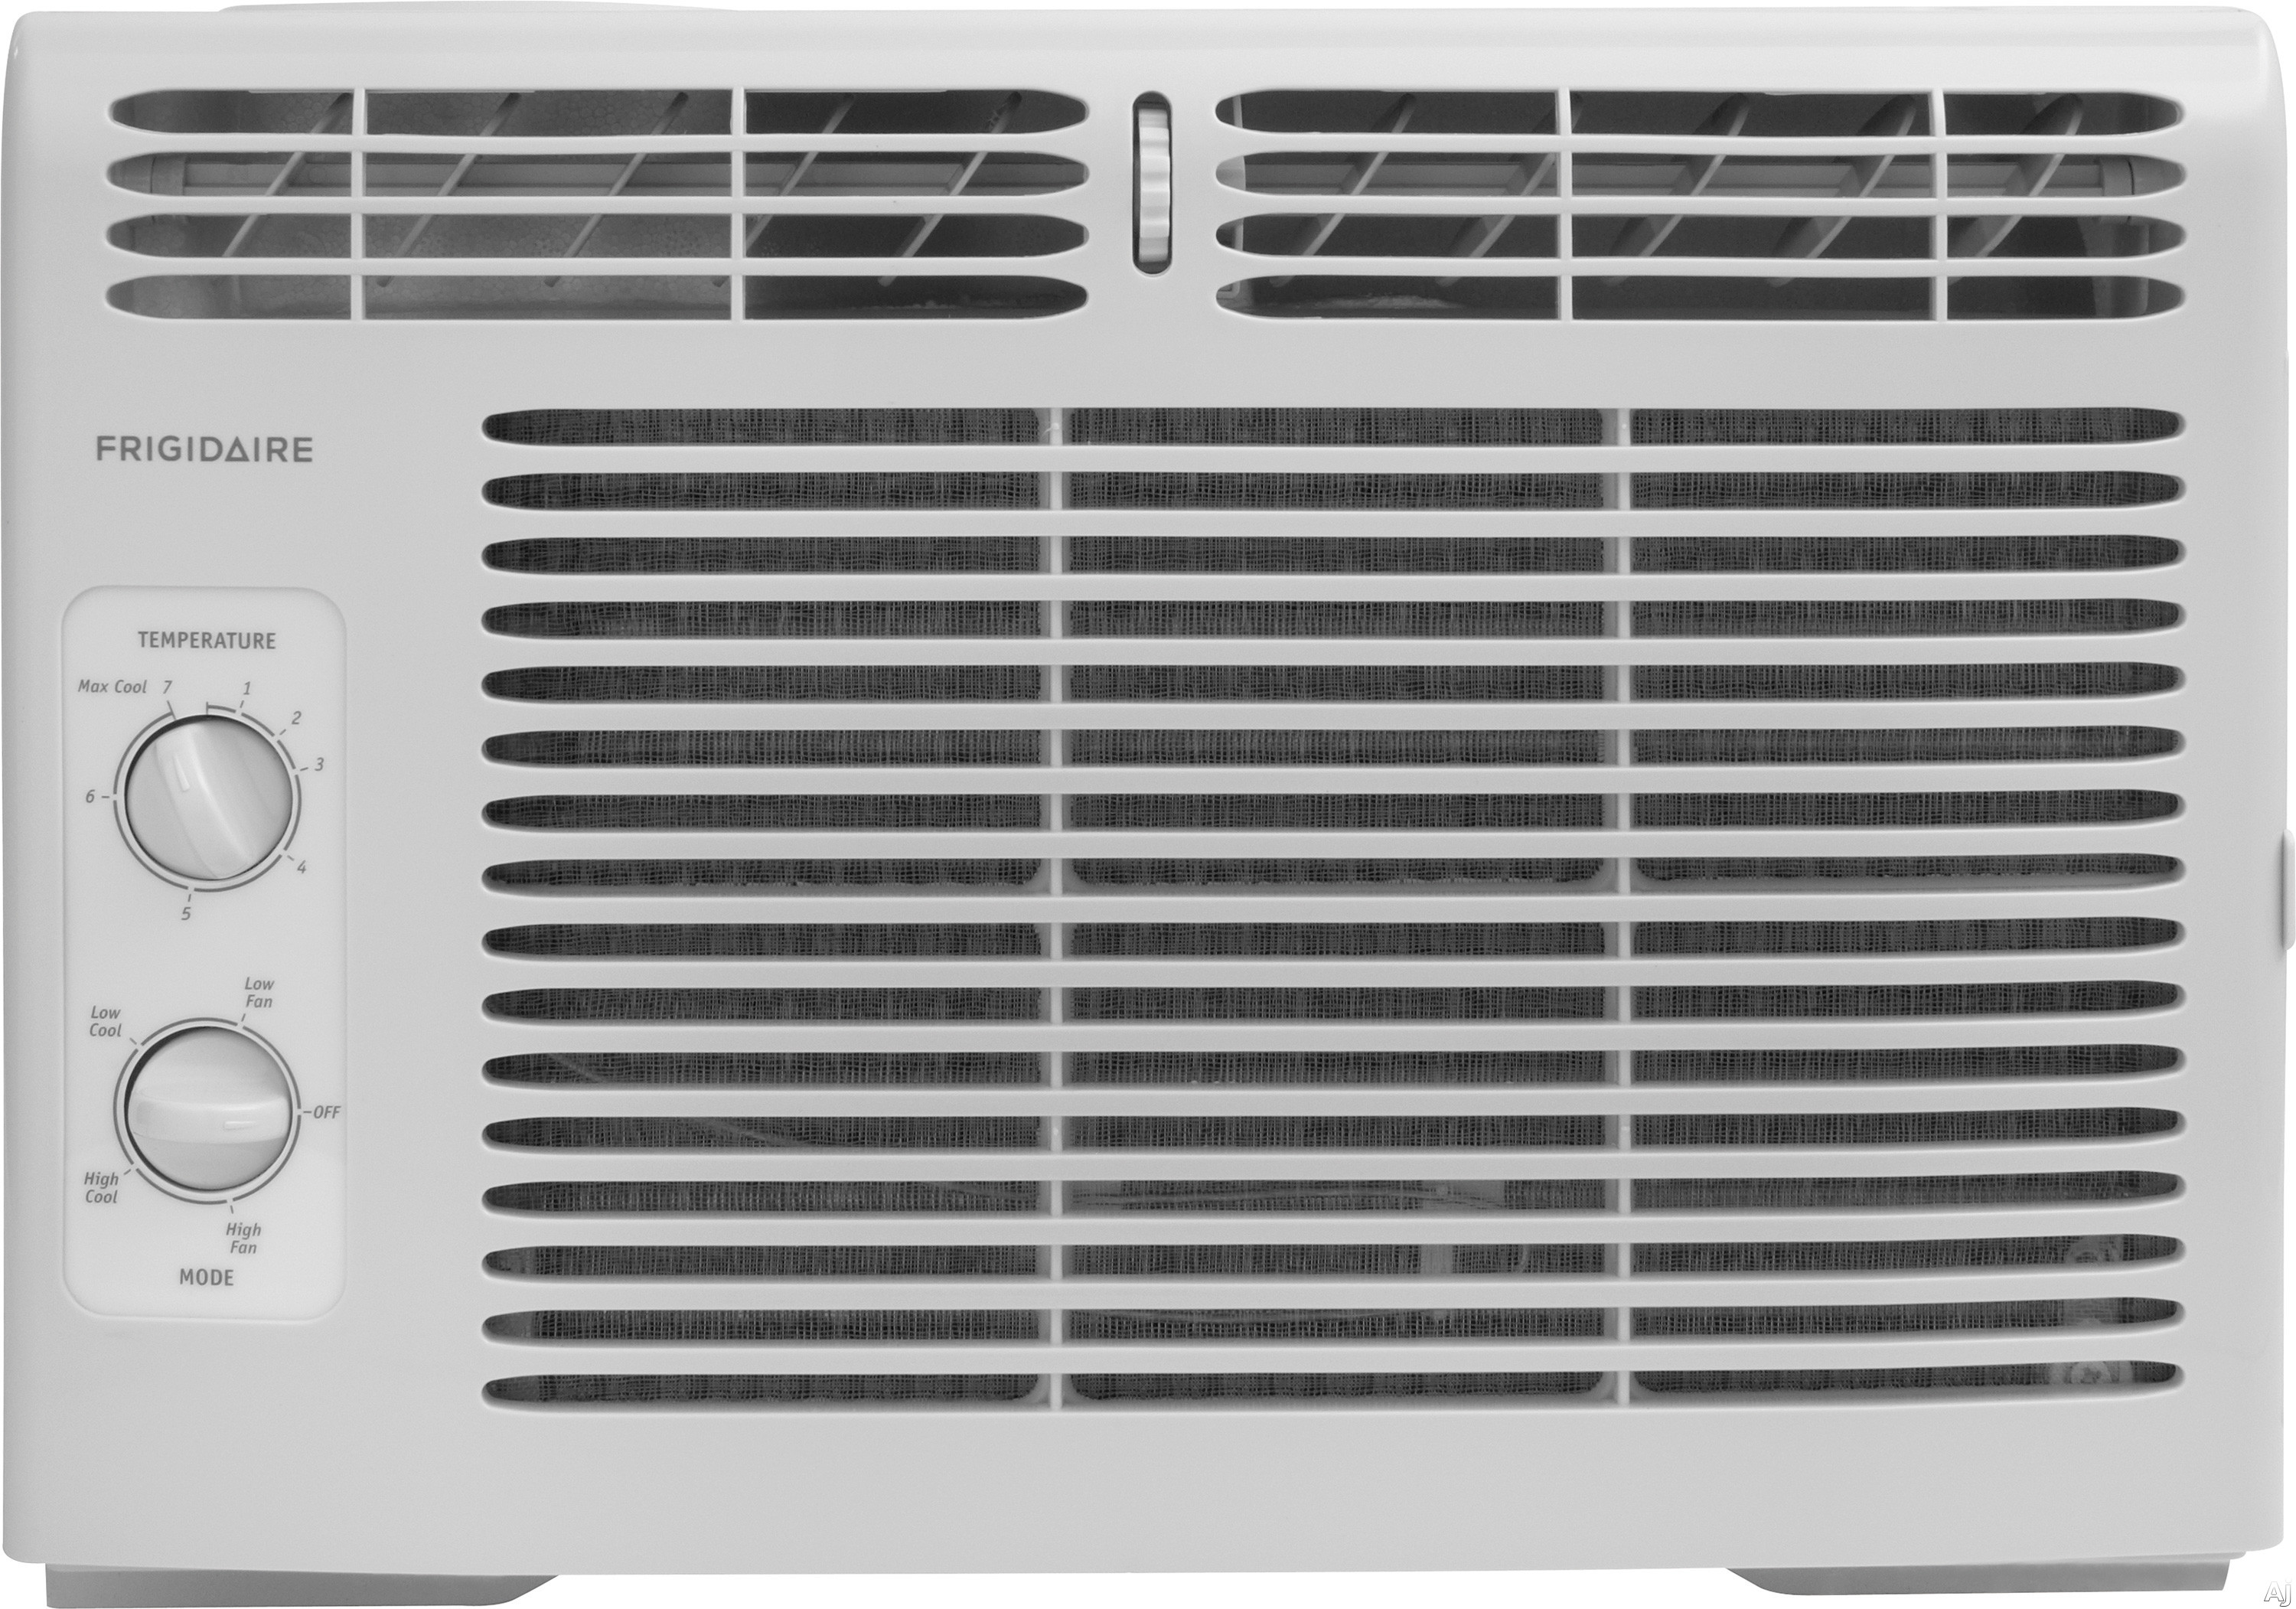 Hvacr And Fans Air Conditioners Portable Air Conditioners - 292523 - Frigidaire Ffra0511r1 Window Air Conditioner 5;000 Btu; 115v 292523